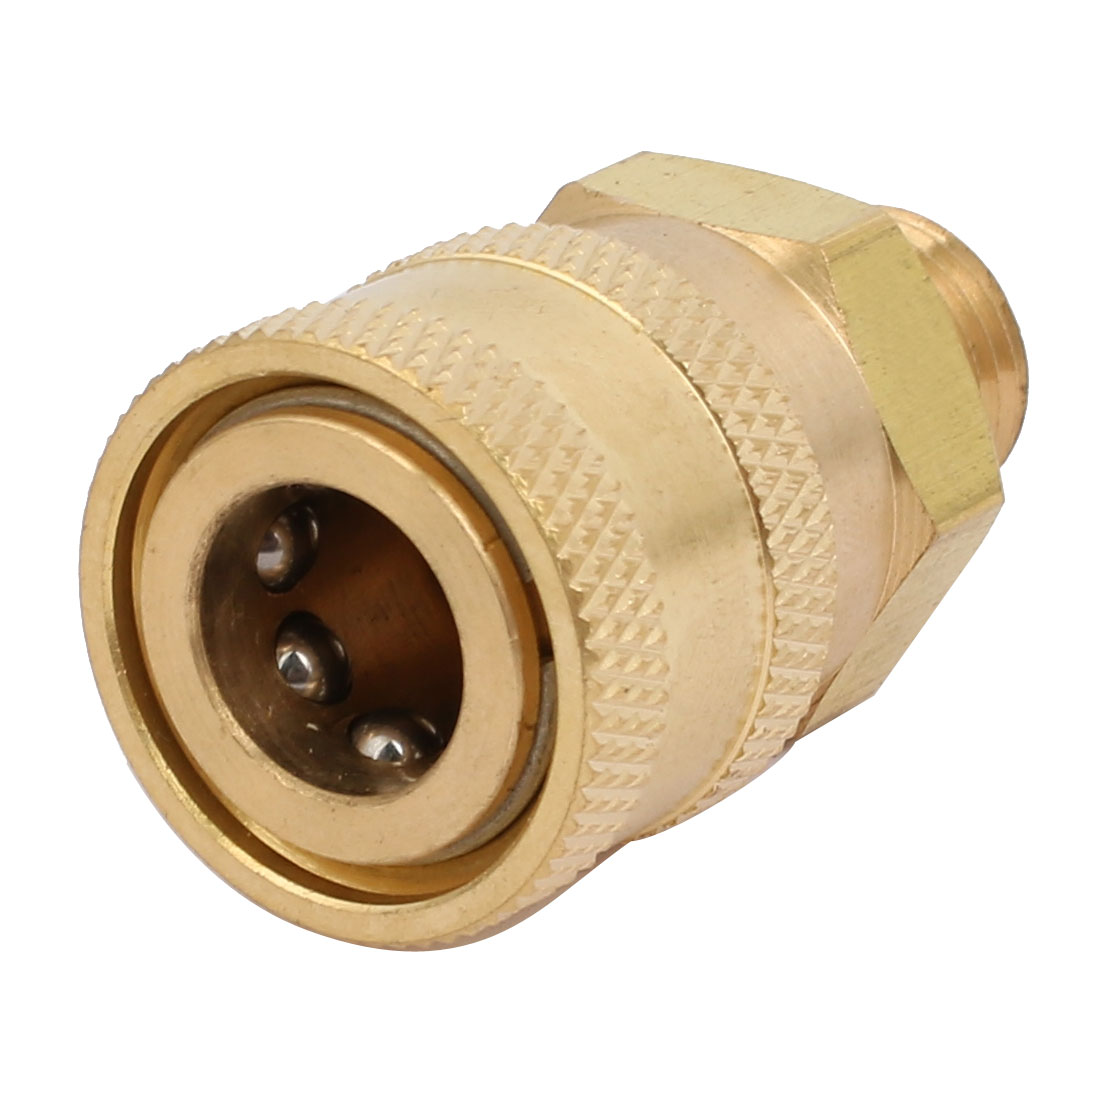 Unique Bargains G1/4 Male Thread Full Flow Quick Connect Washer Spray Nozzle Gold Tone